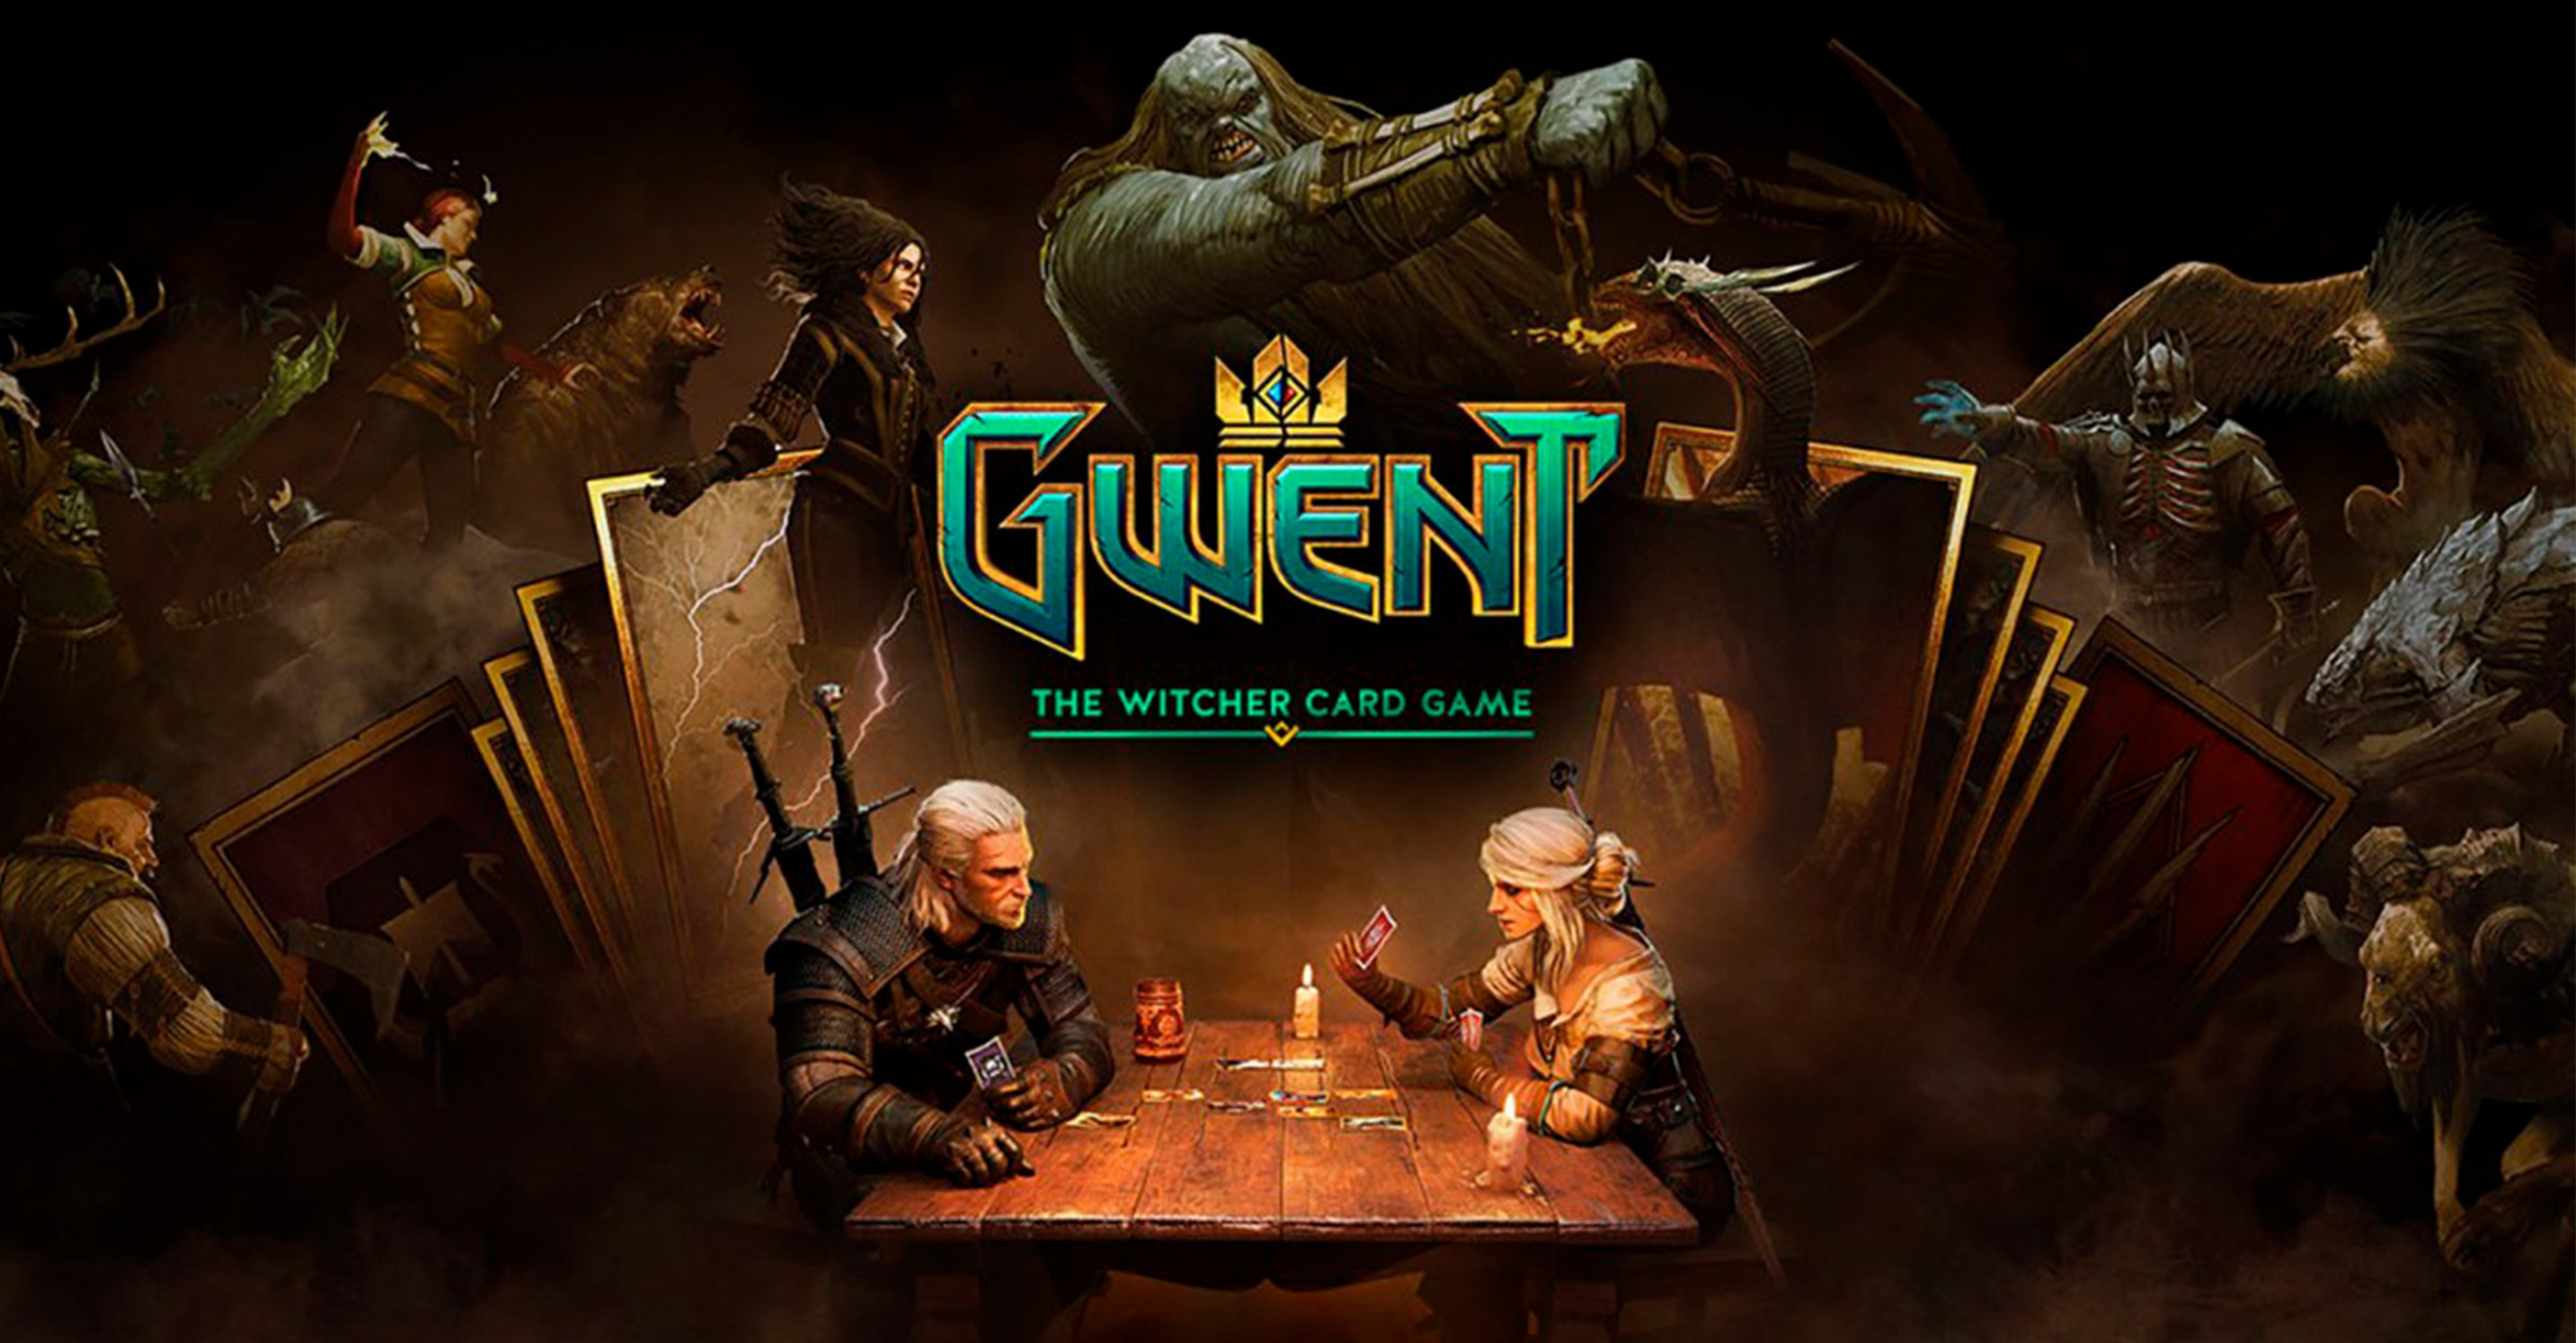 Gwent-The-Witcher-Card-Game-1